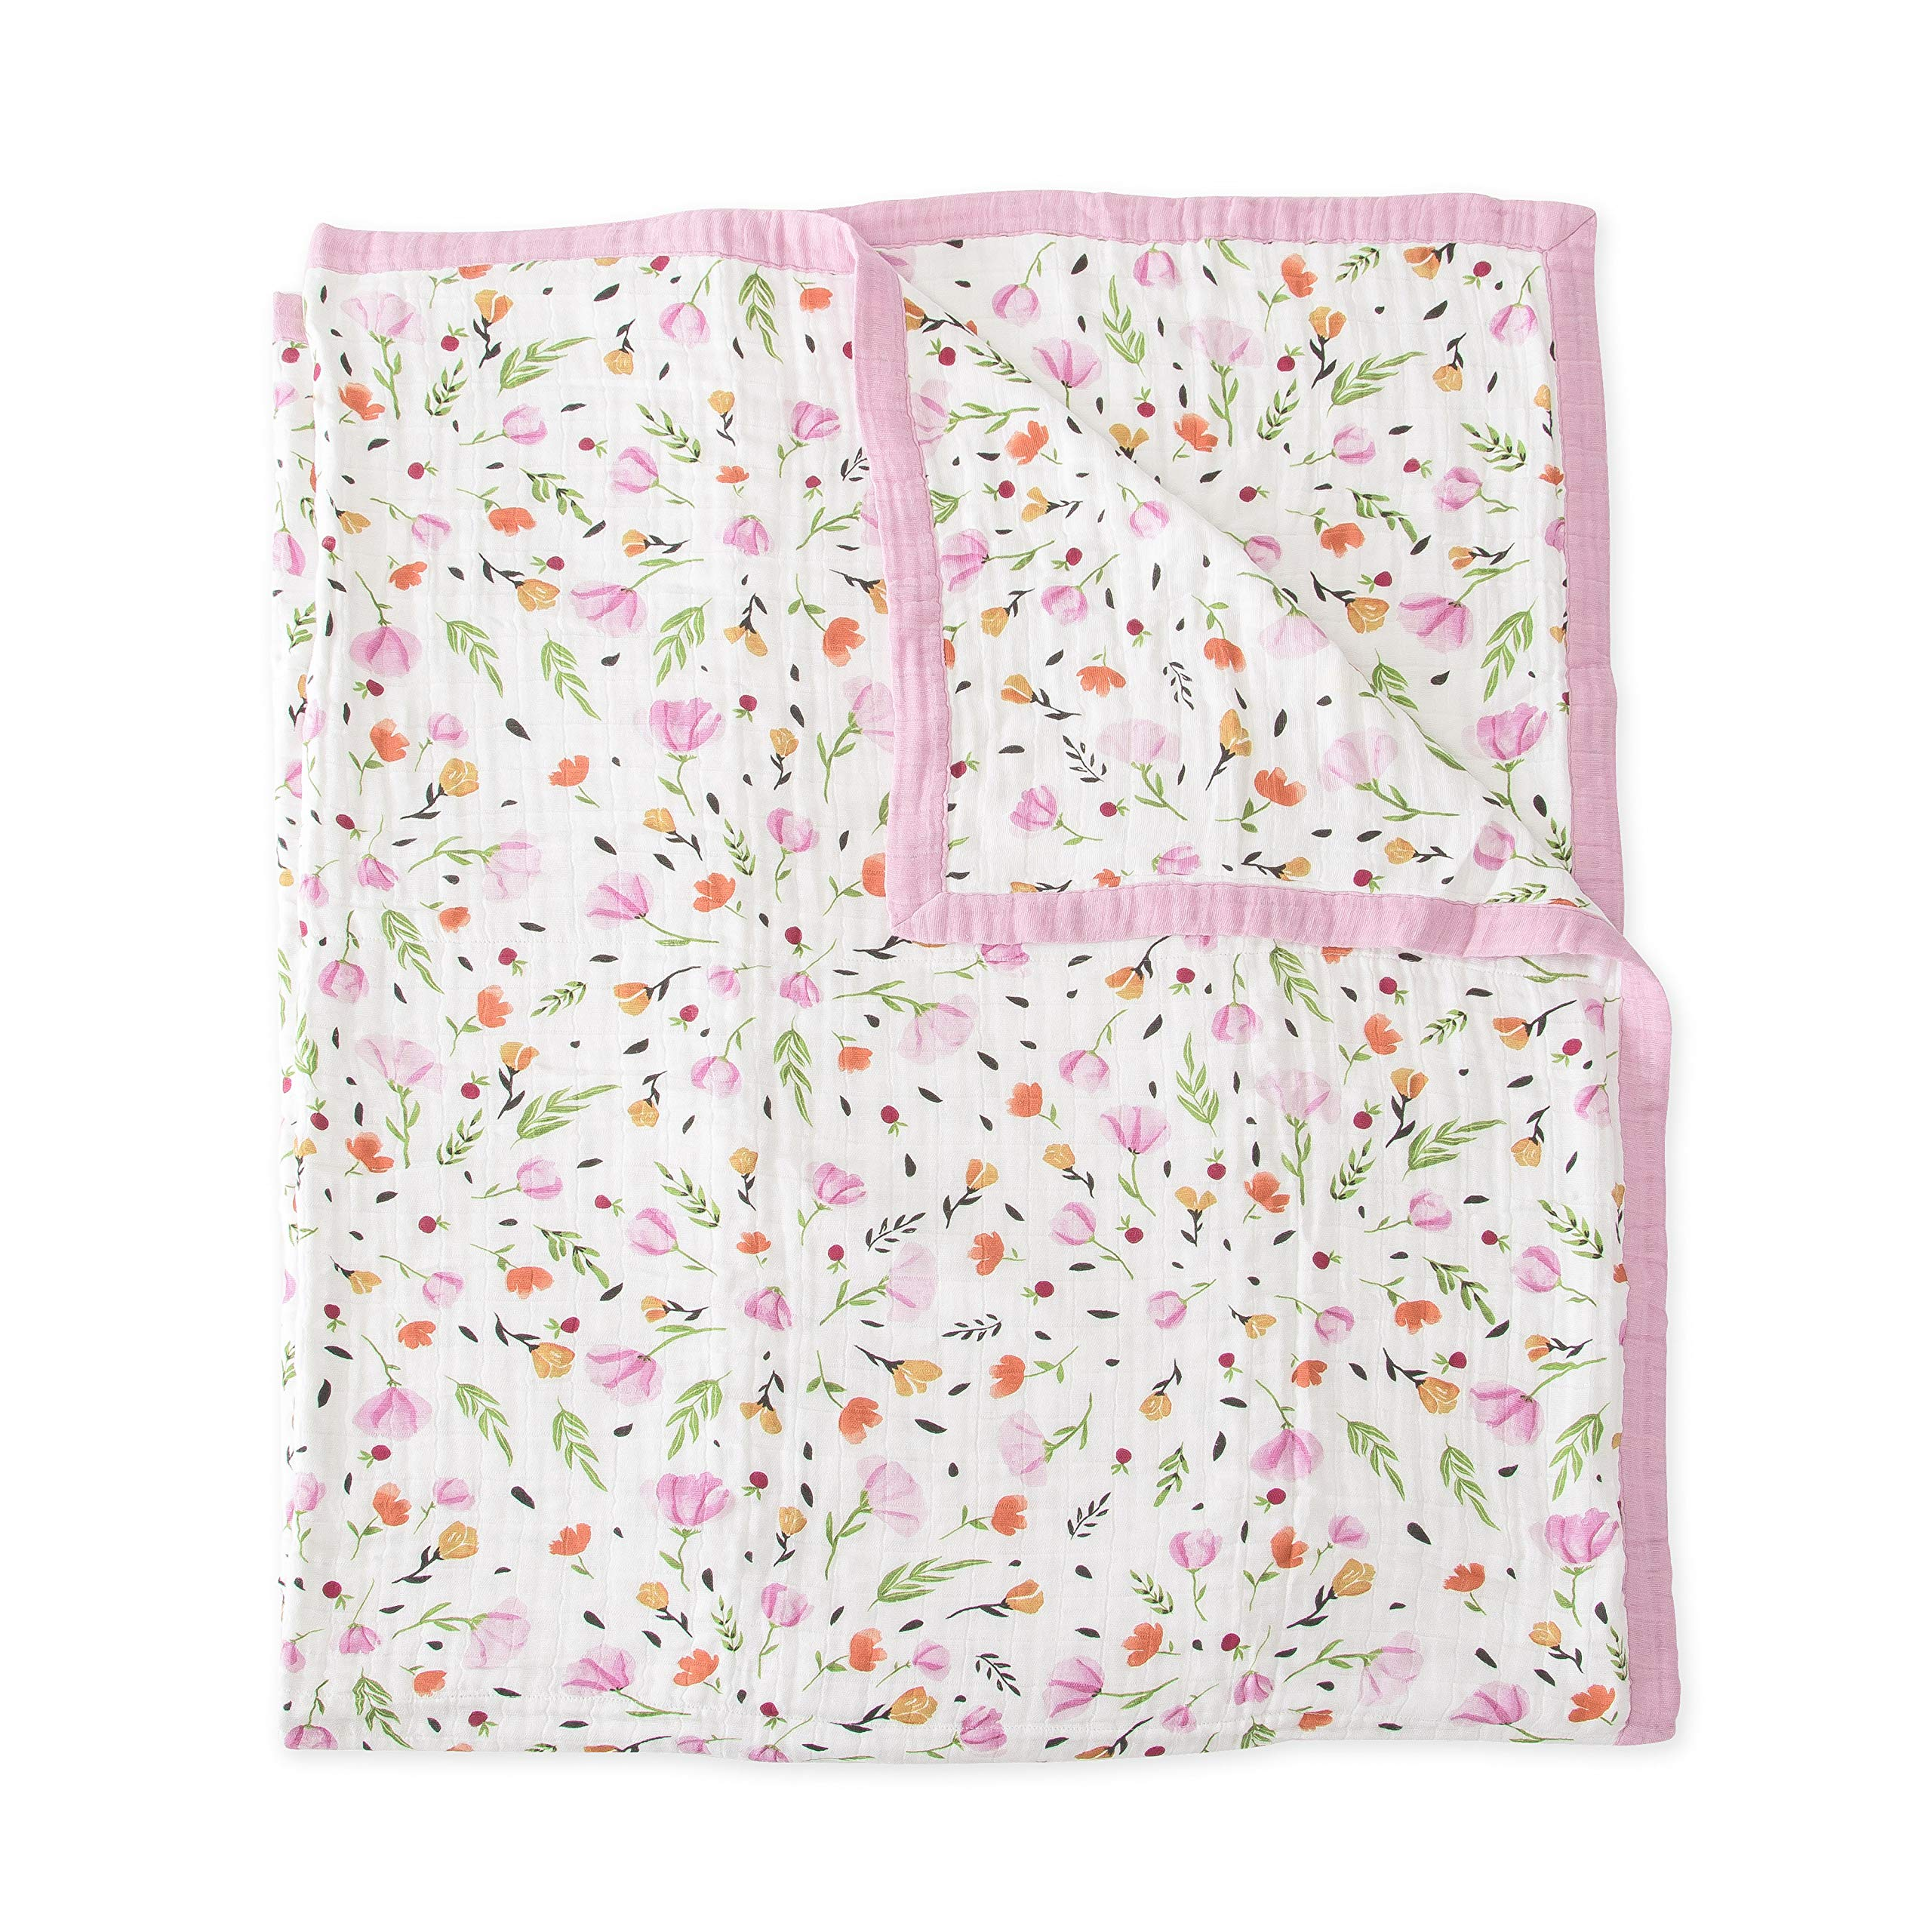 Little Unicorn Extra Soft Cotton Muslin Large Quilt Blanket - Berry & Bloom